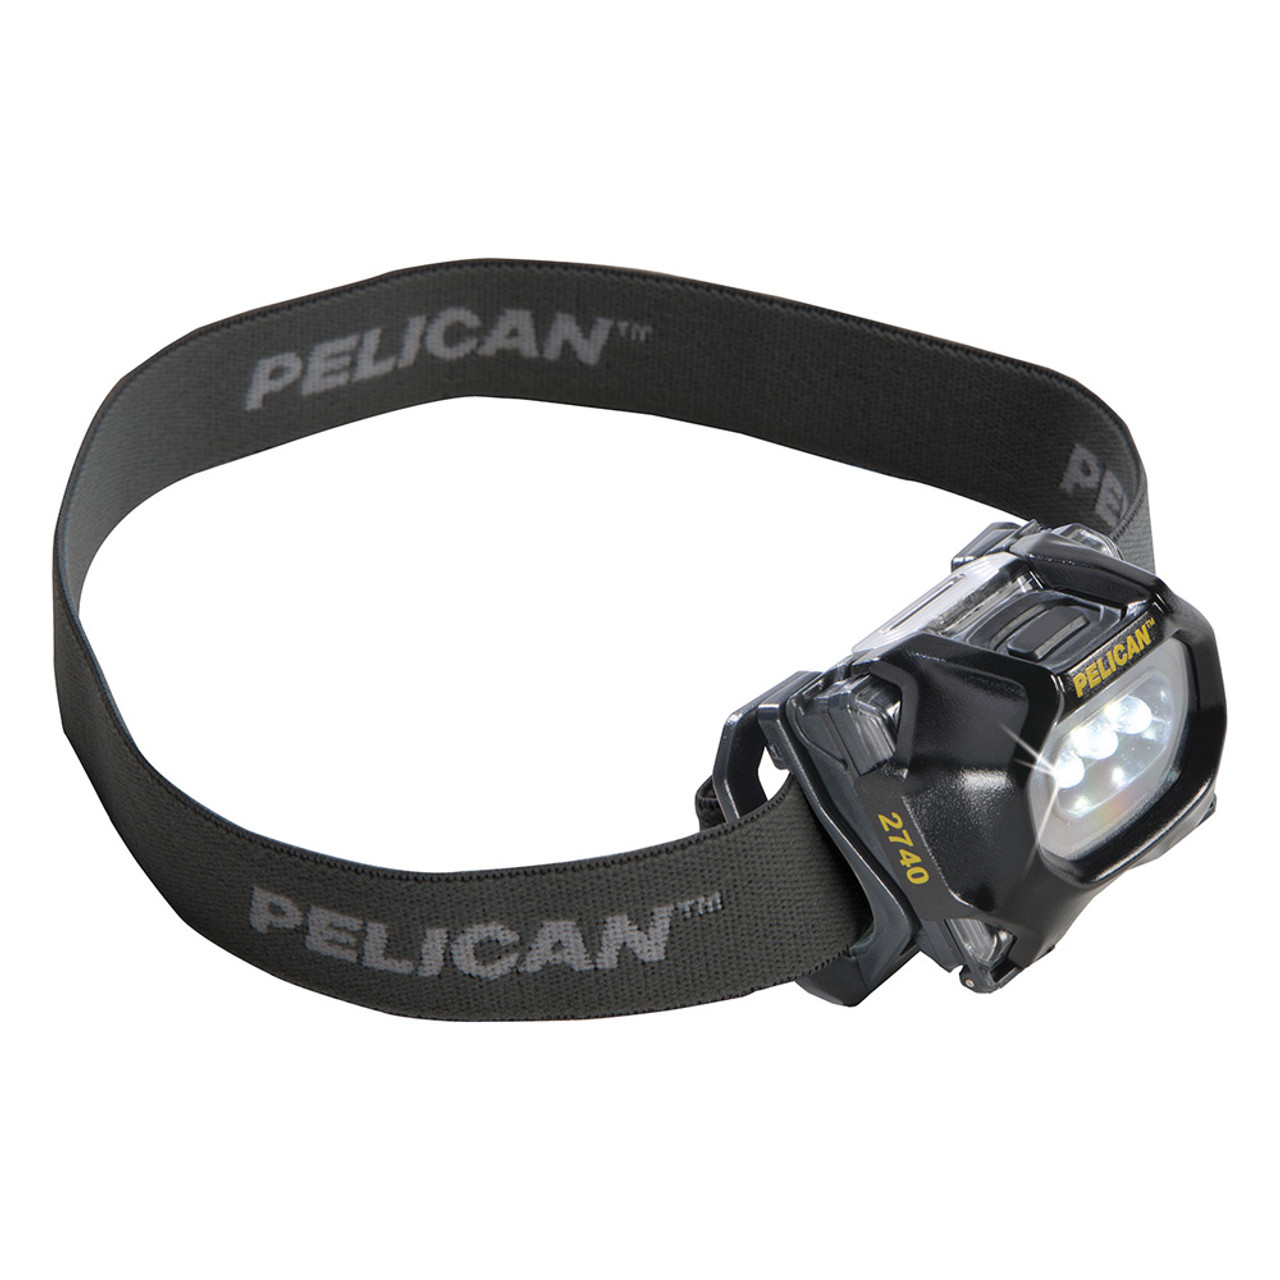 Pelican Compact LED Headlamp, 3 LEDs, With Night vision friendly, Available in Black or Translucent Blue  2740